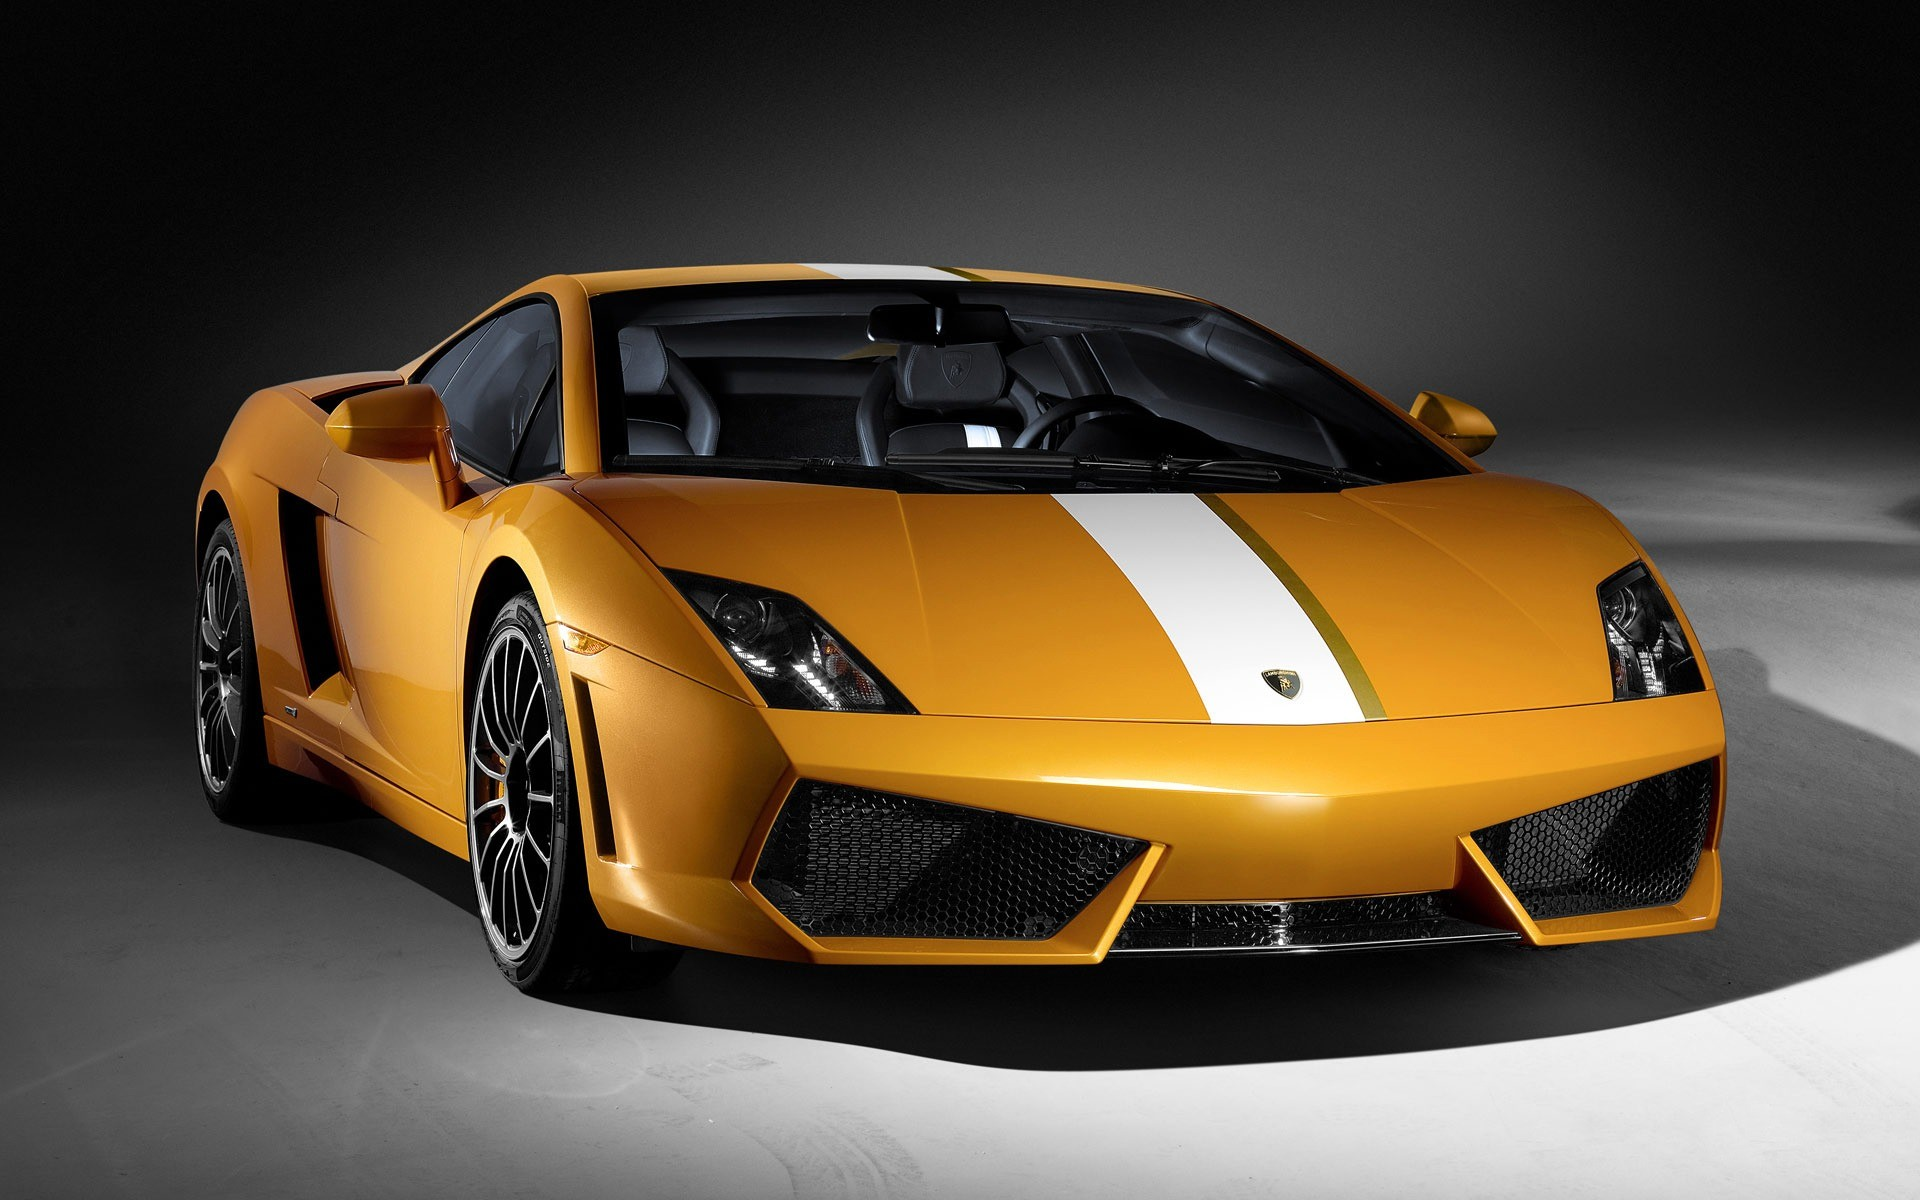 1920x1200 Lamborghini Gallardo LP550 2 Wallpaper Lamborghini Cars Wallpapers